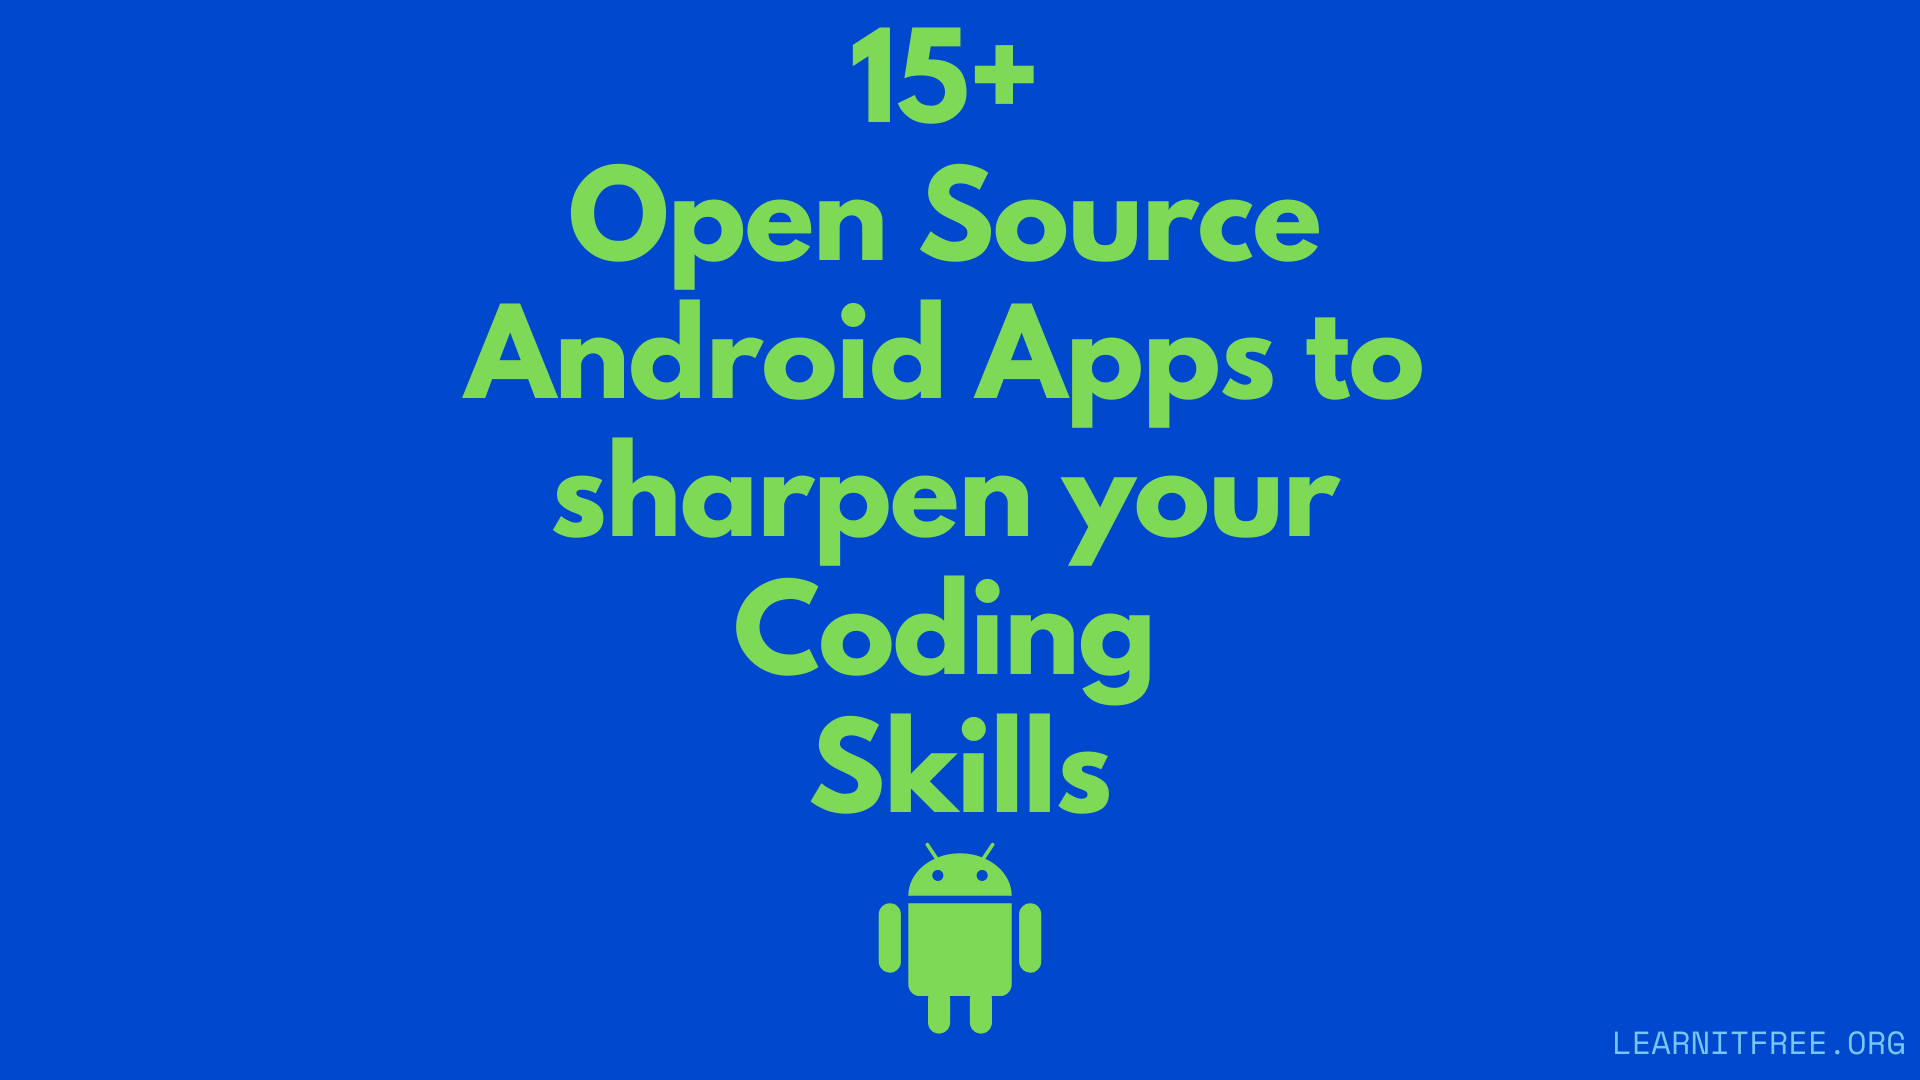 Featured Image for 15+ Open Source Android Apps to sharpen your Coding Skills